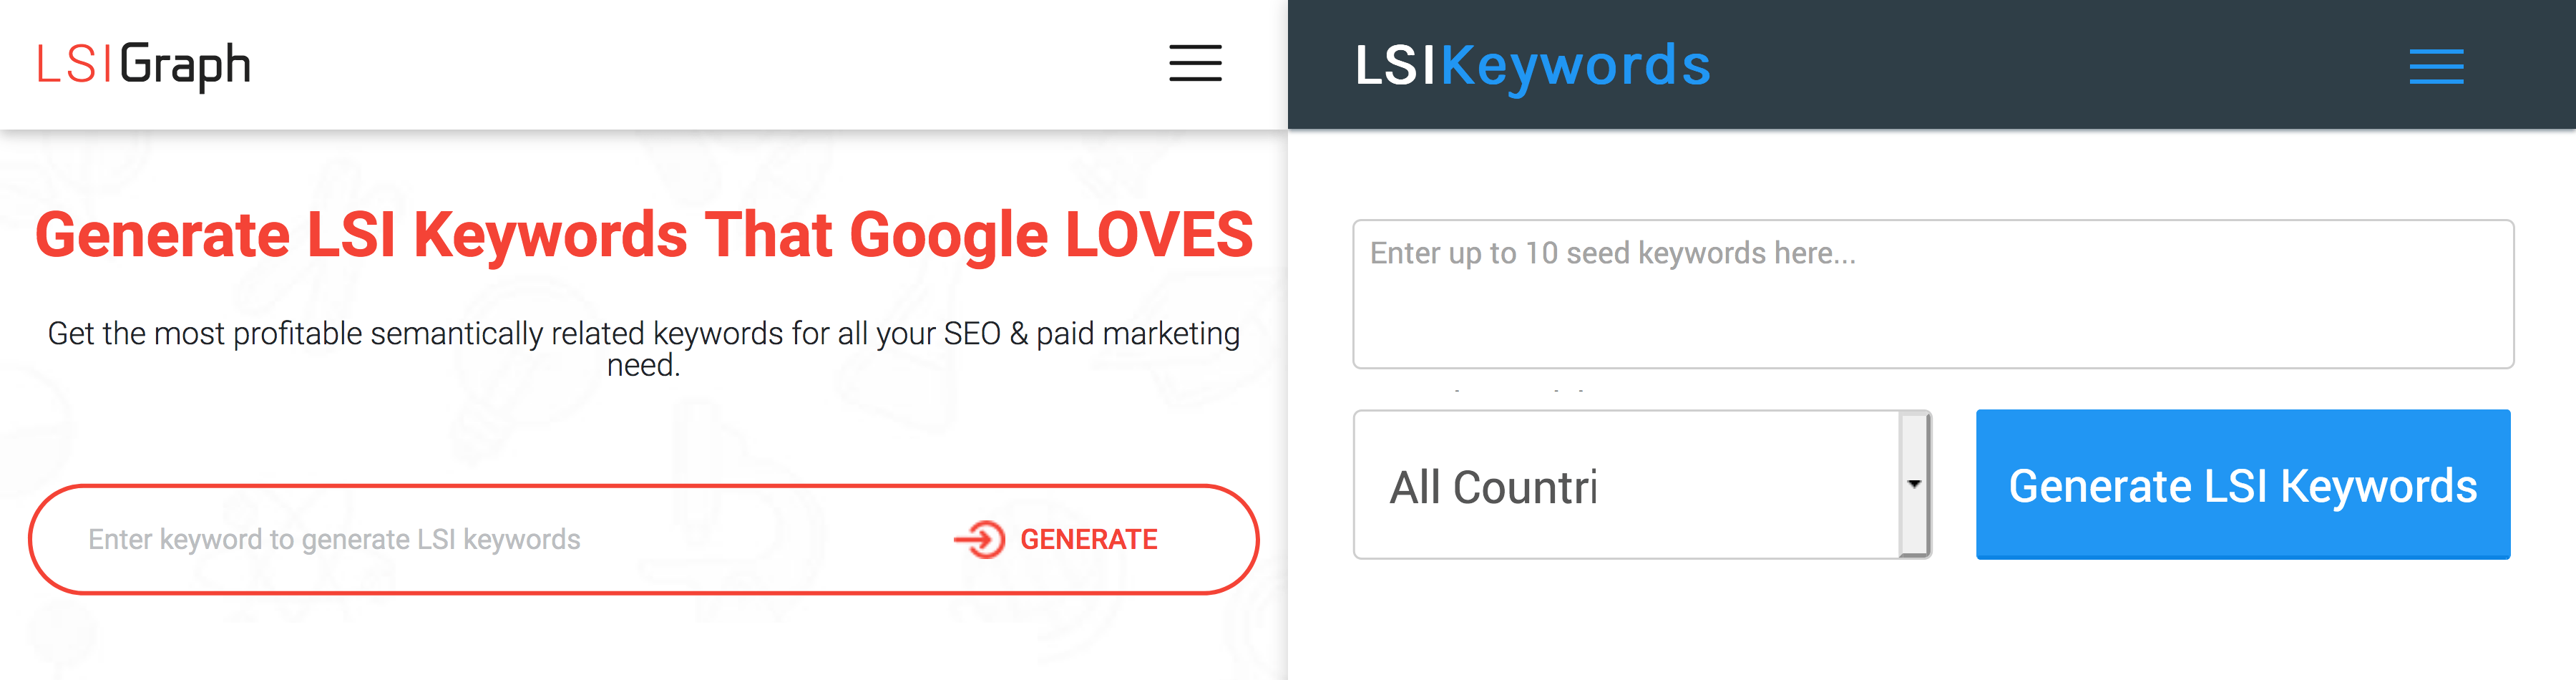 LSIGraph and LSIKeywords